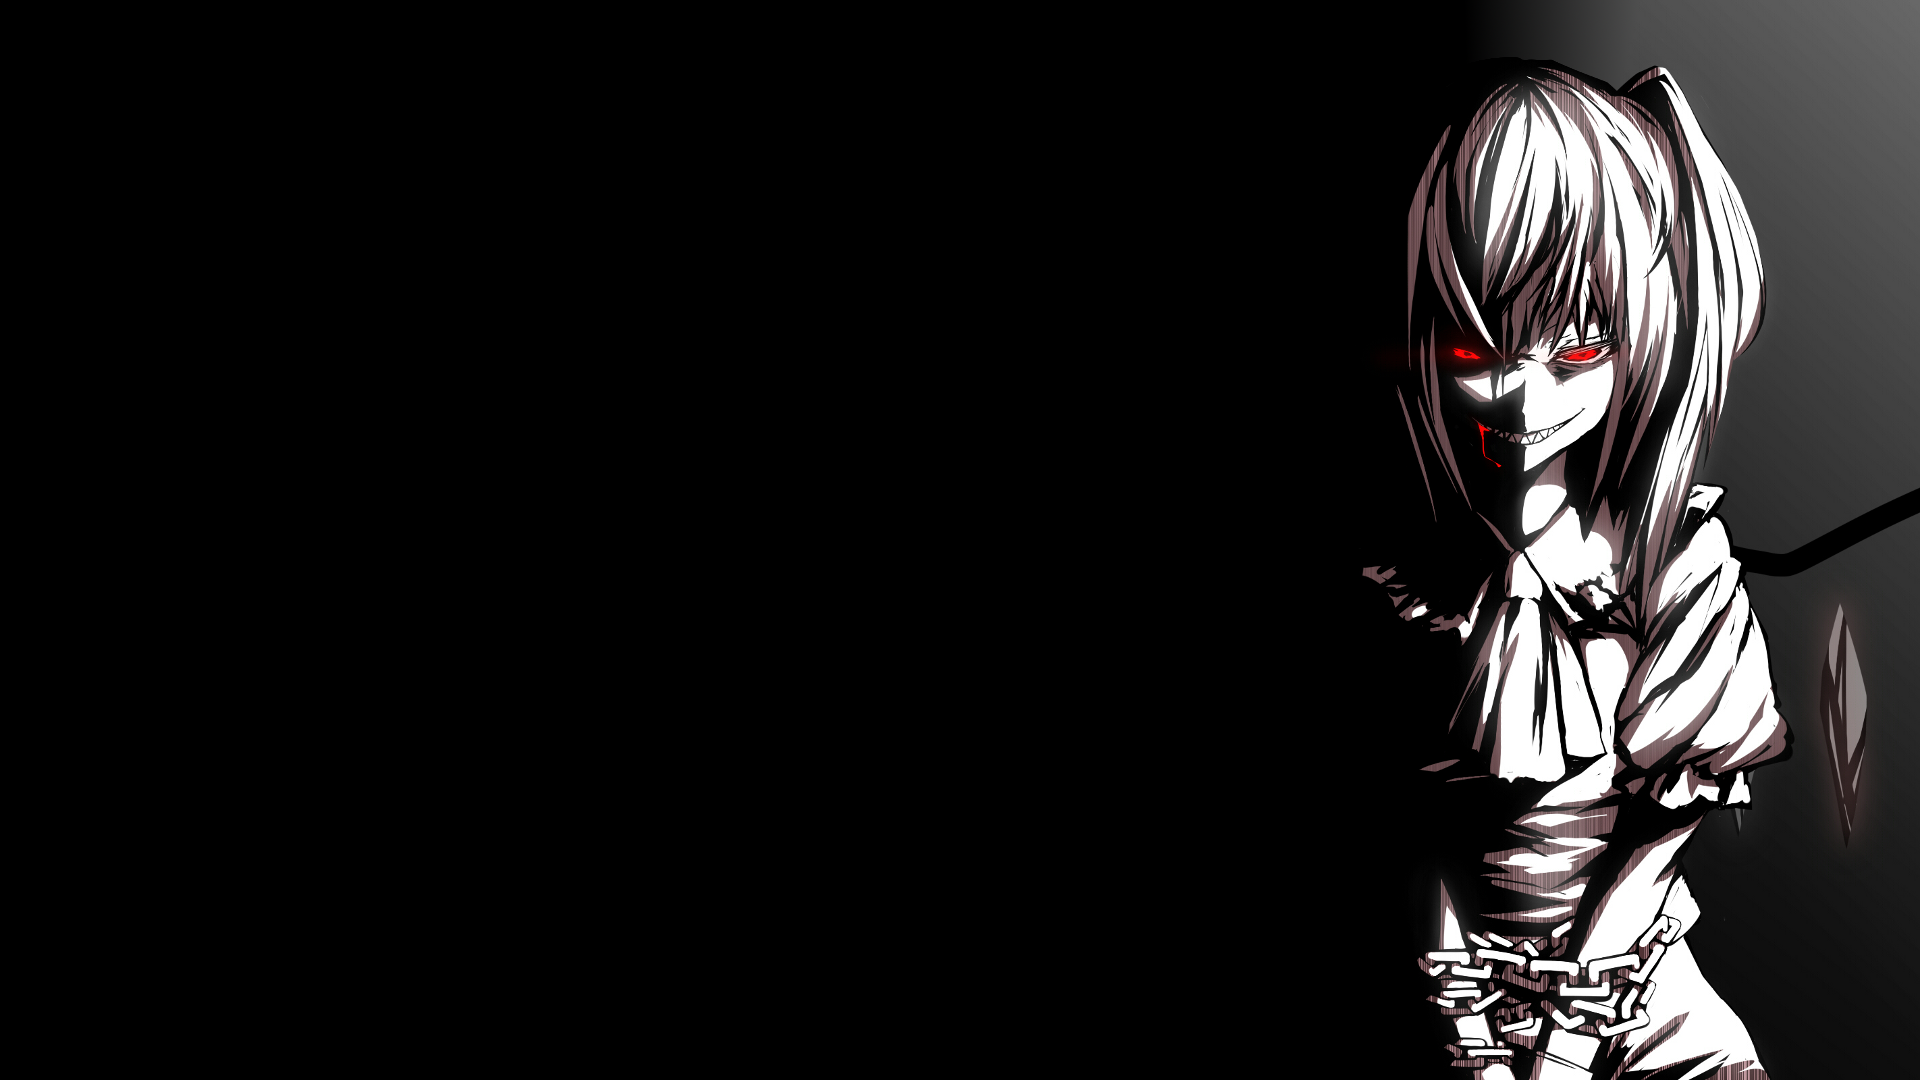 Creepy anime wallpaper wide